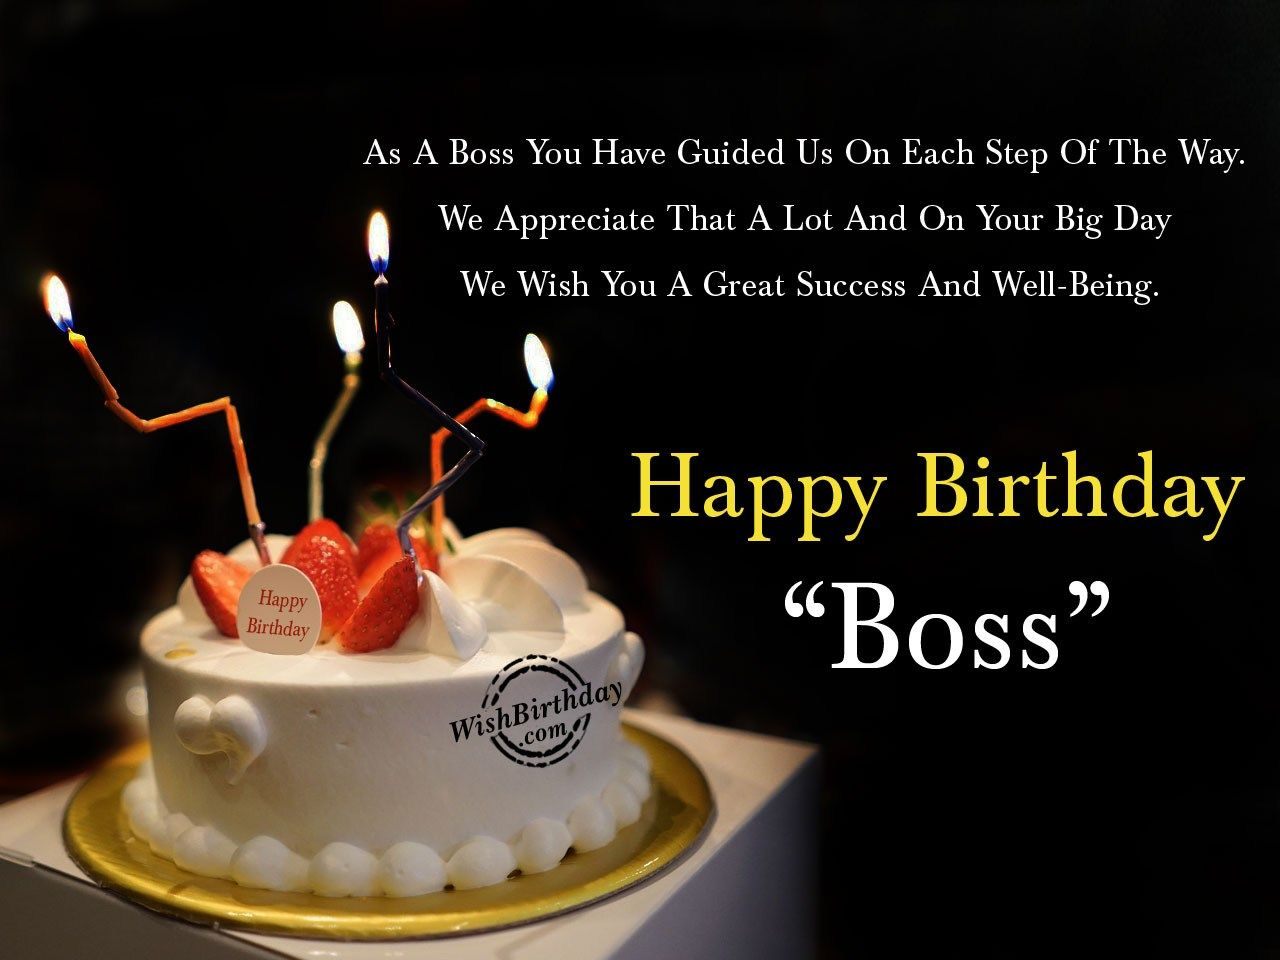 Birthday Wishes For Boss Images Pictures Best Quotes Quotesgram - Birthday cake wishes quotes